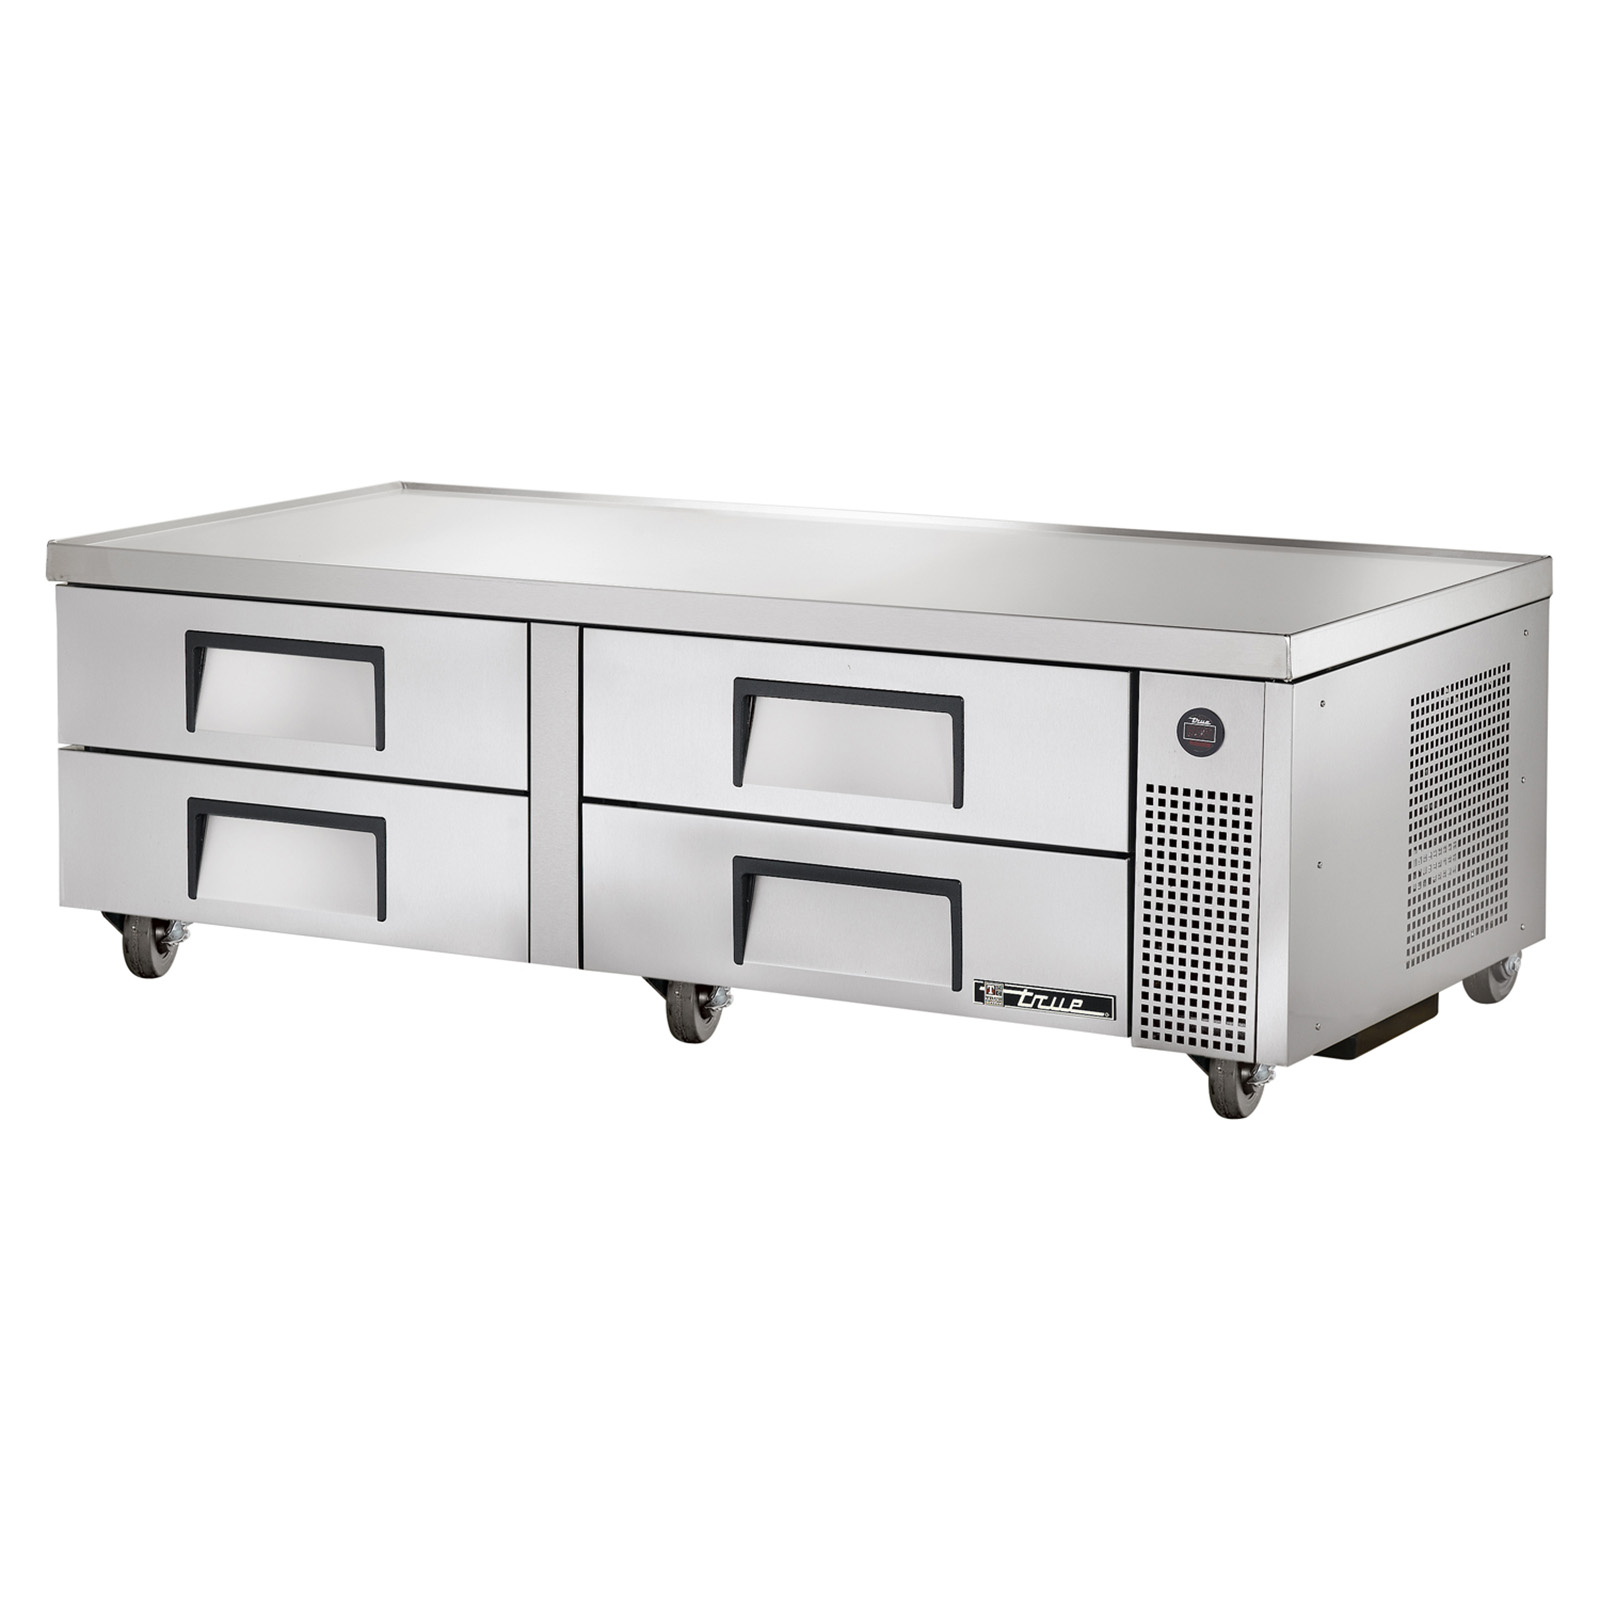 TRCB-72 True - Refrigerated Chef Base 72-3/8